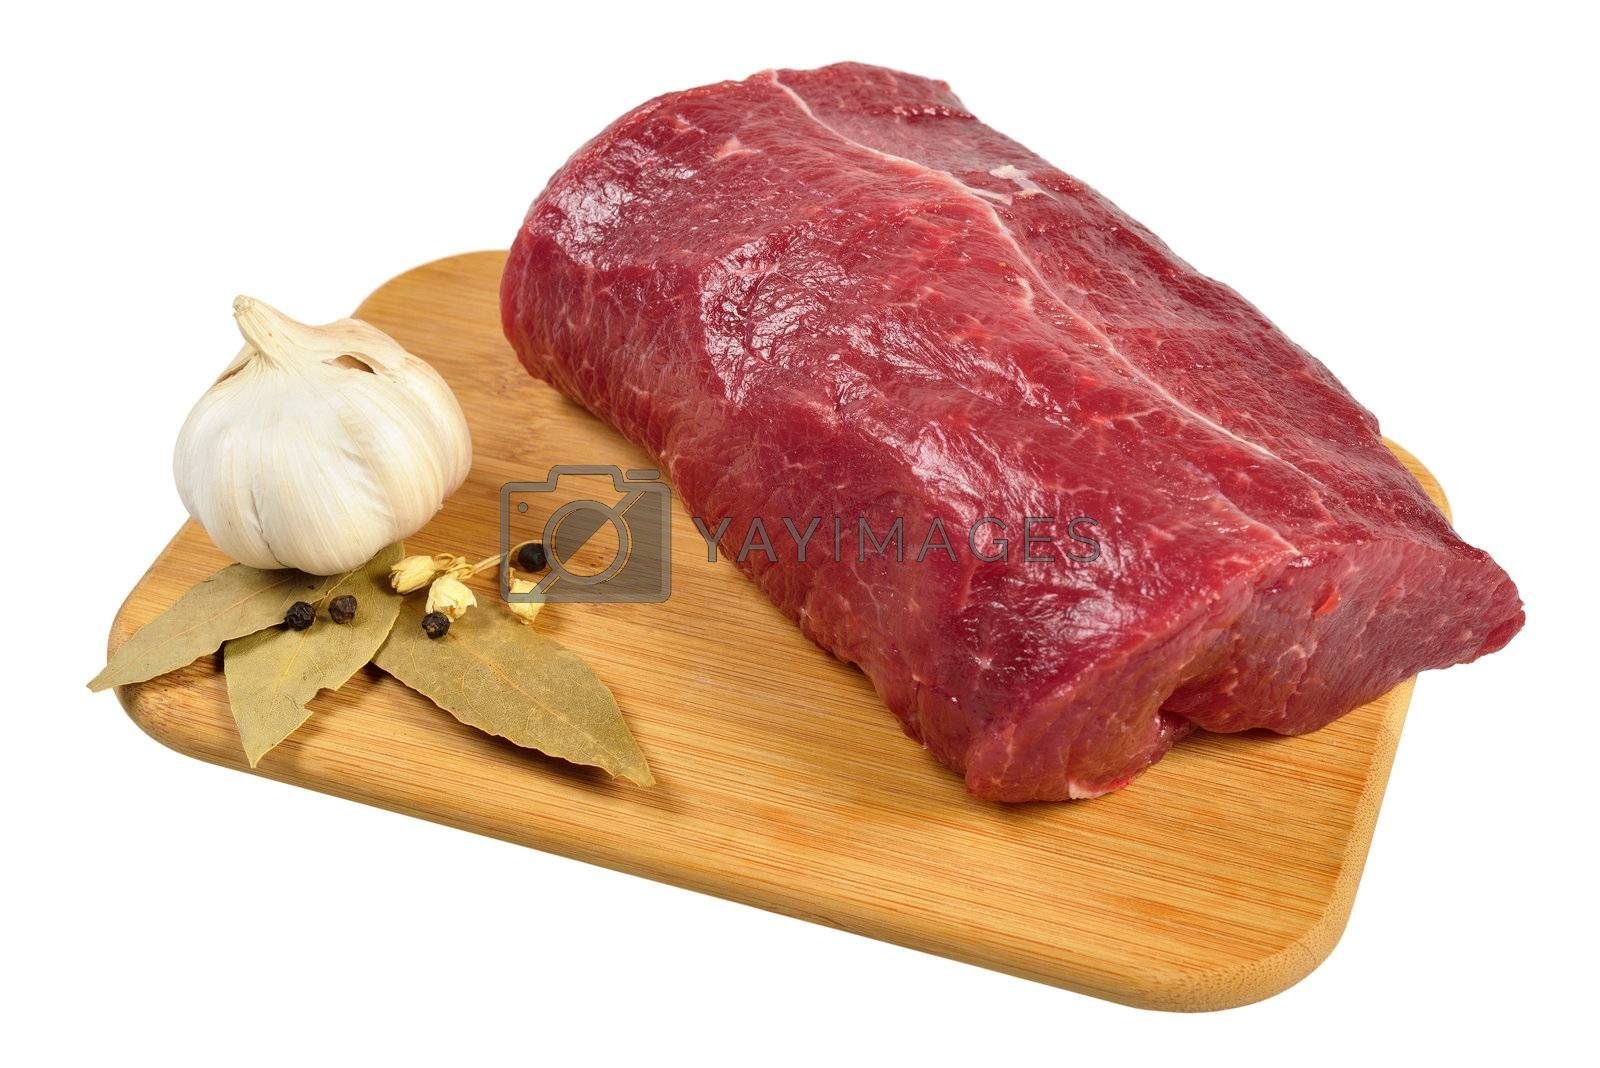 Royalty free image of Raw Beef on wooden board by grauvision